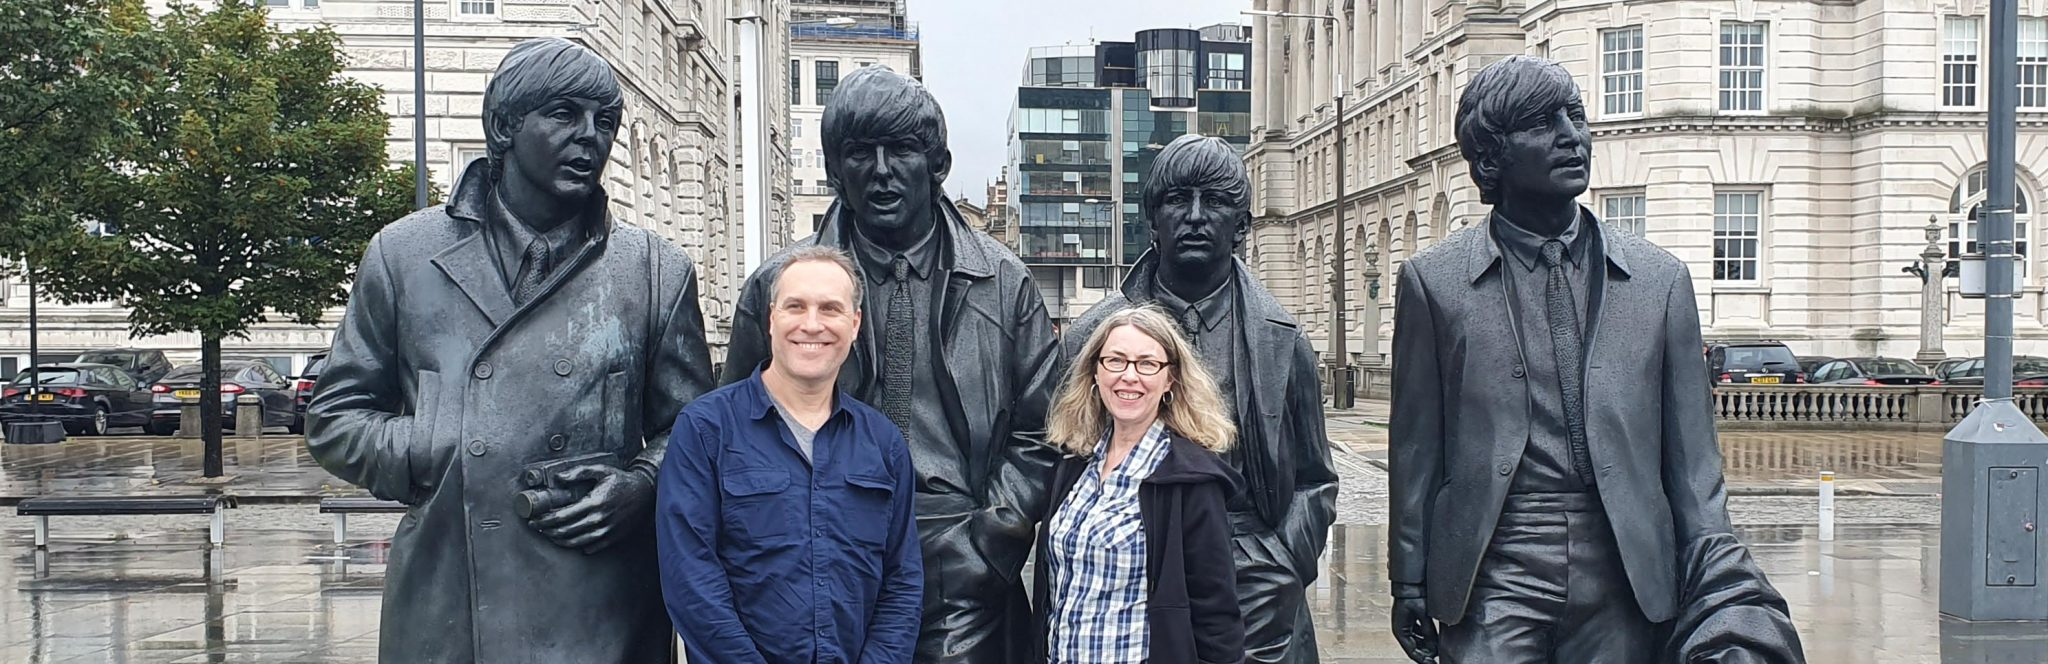 Things to do in Liverpool - Beatles statue